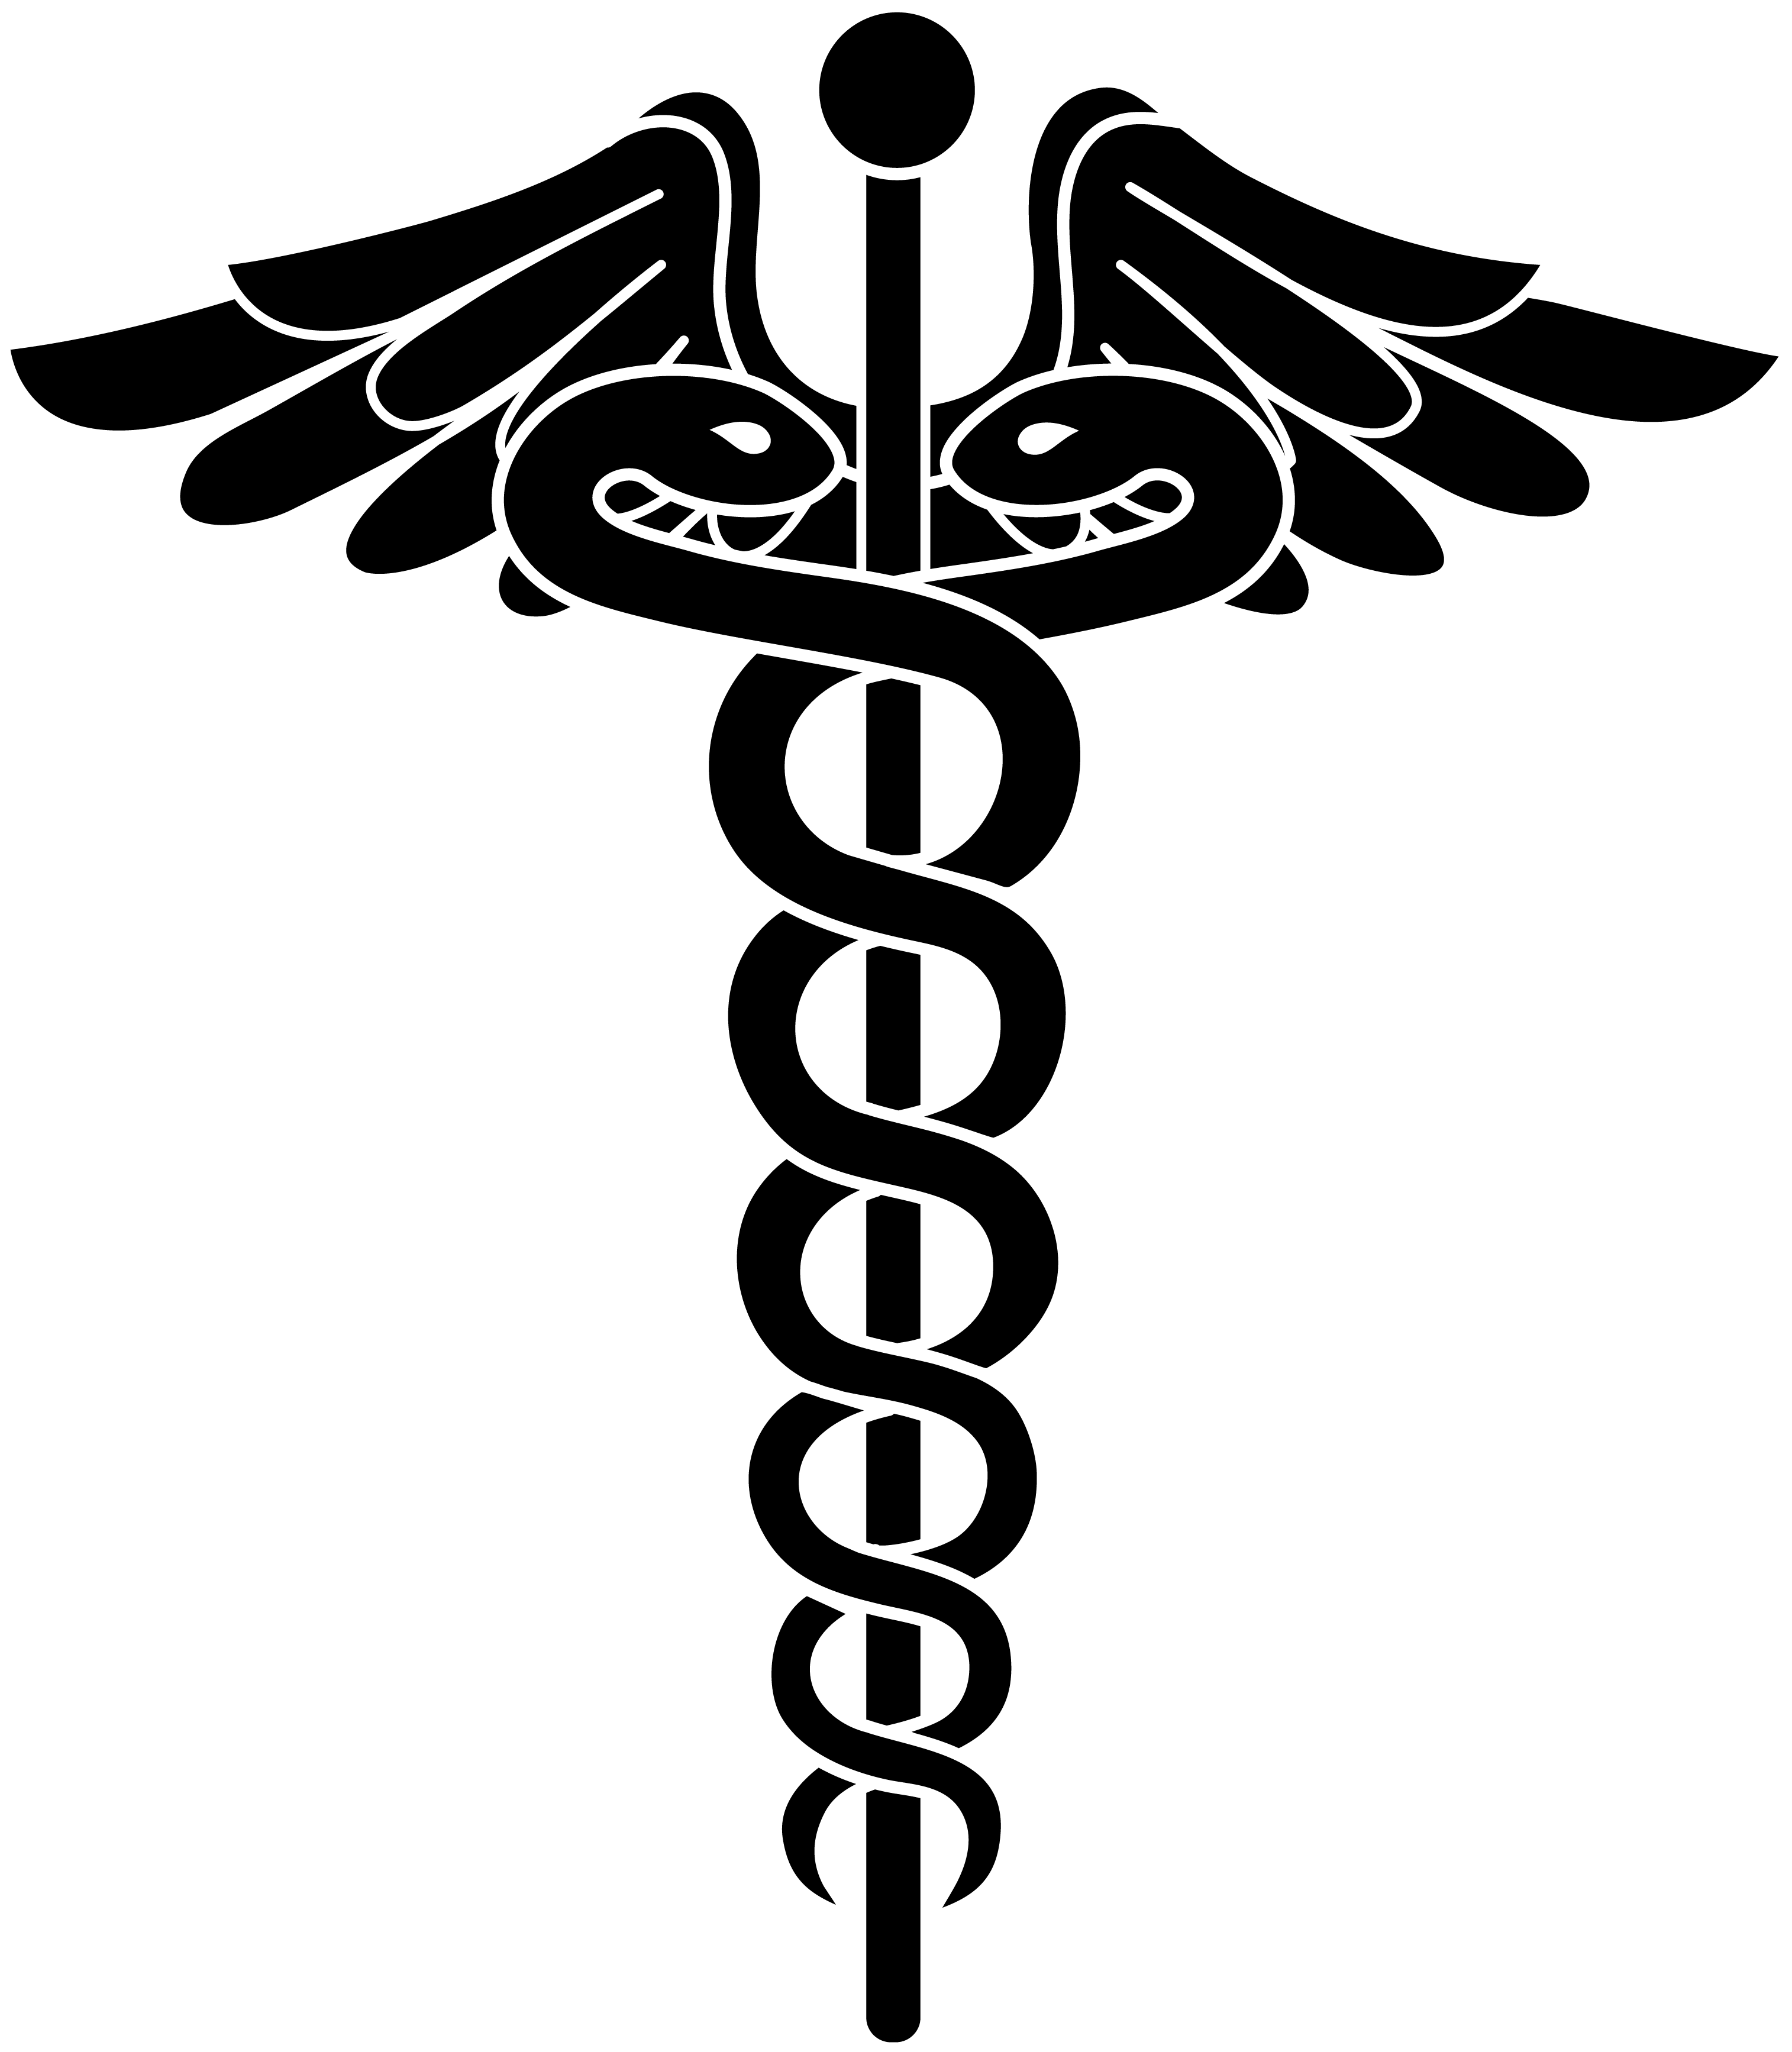 Download doctor symbol free png photo images and clipart freepngimg doctor symbol caduceus free png image png image biocorpaavc Gallery